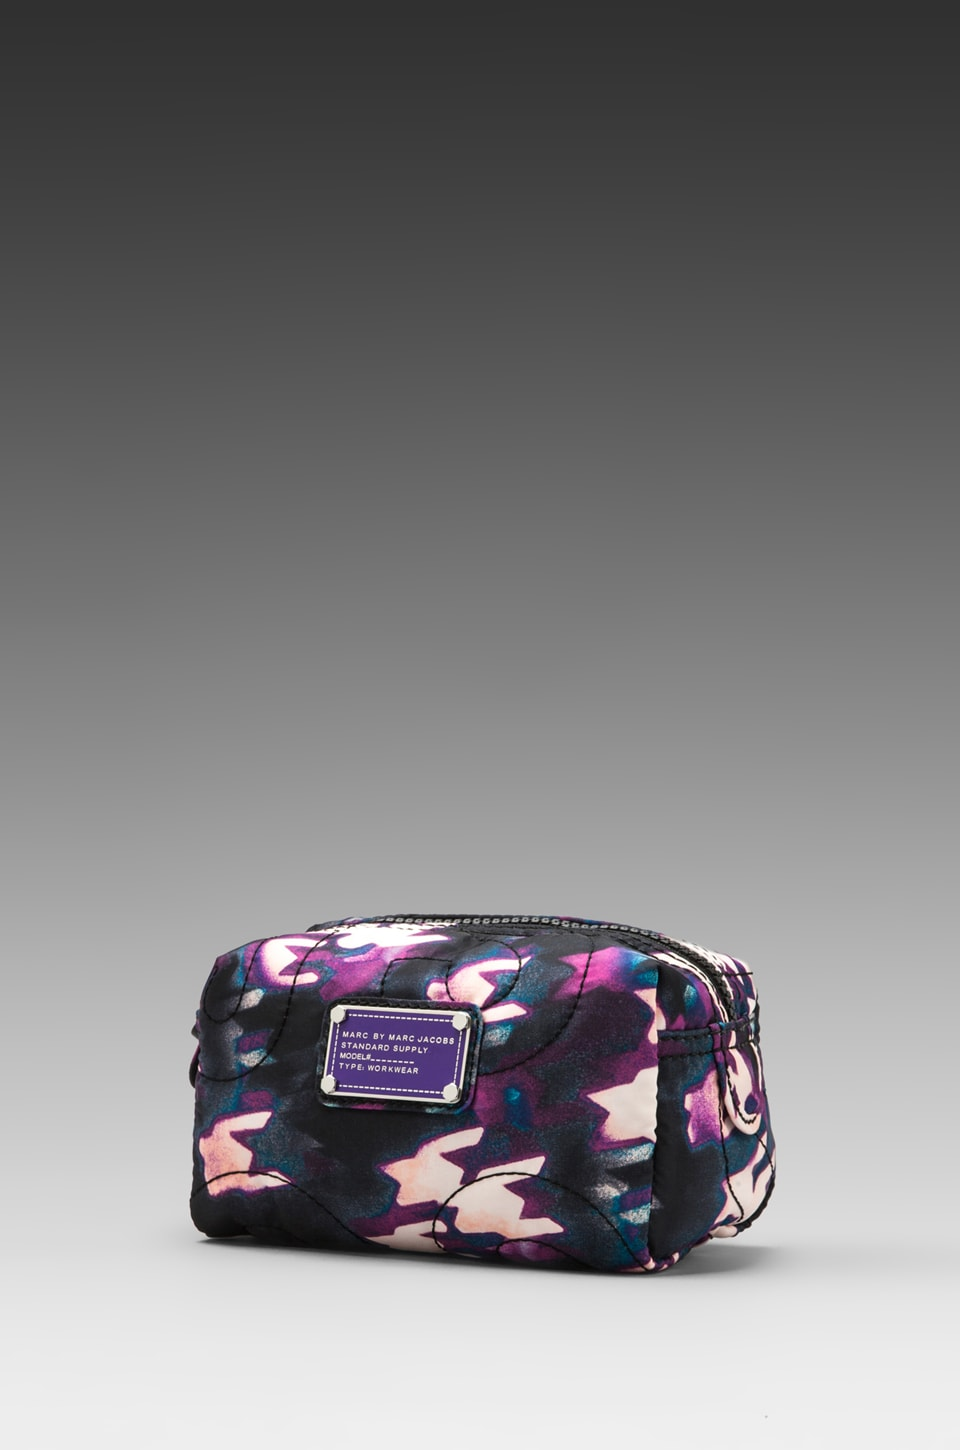 Marc by Marc Jacobs Pretty Nylon Printed Small Cosmetic Bag in Black Multi